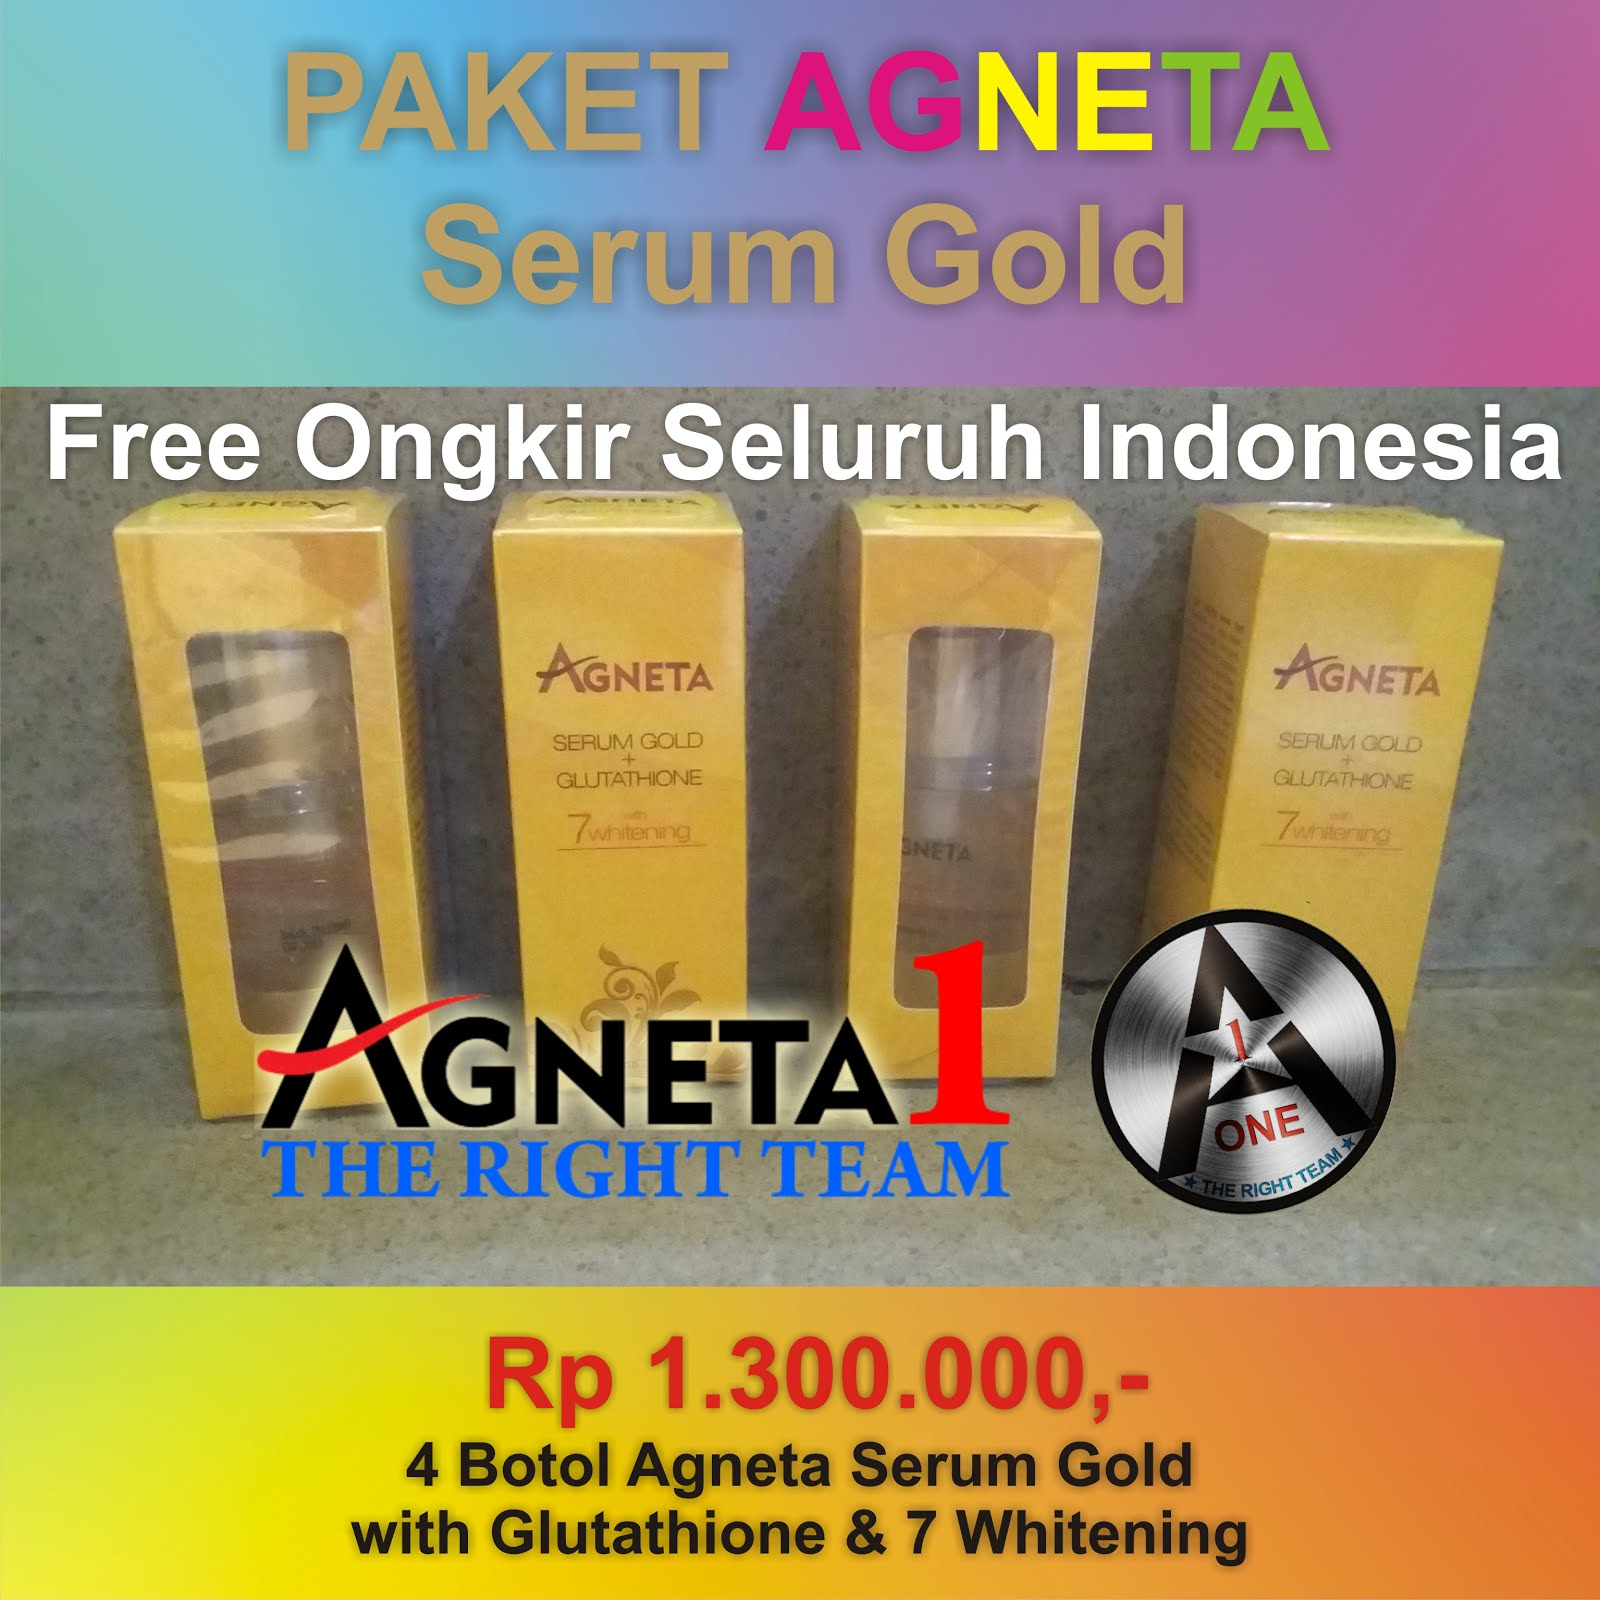 Produk Agneta Serum Gold